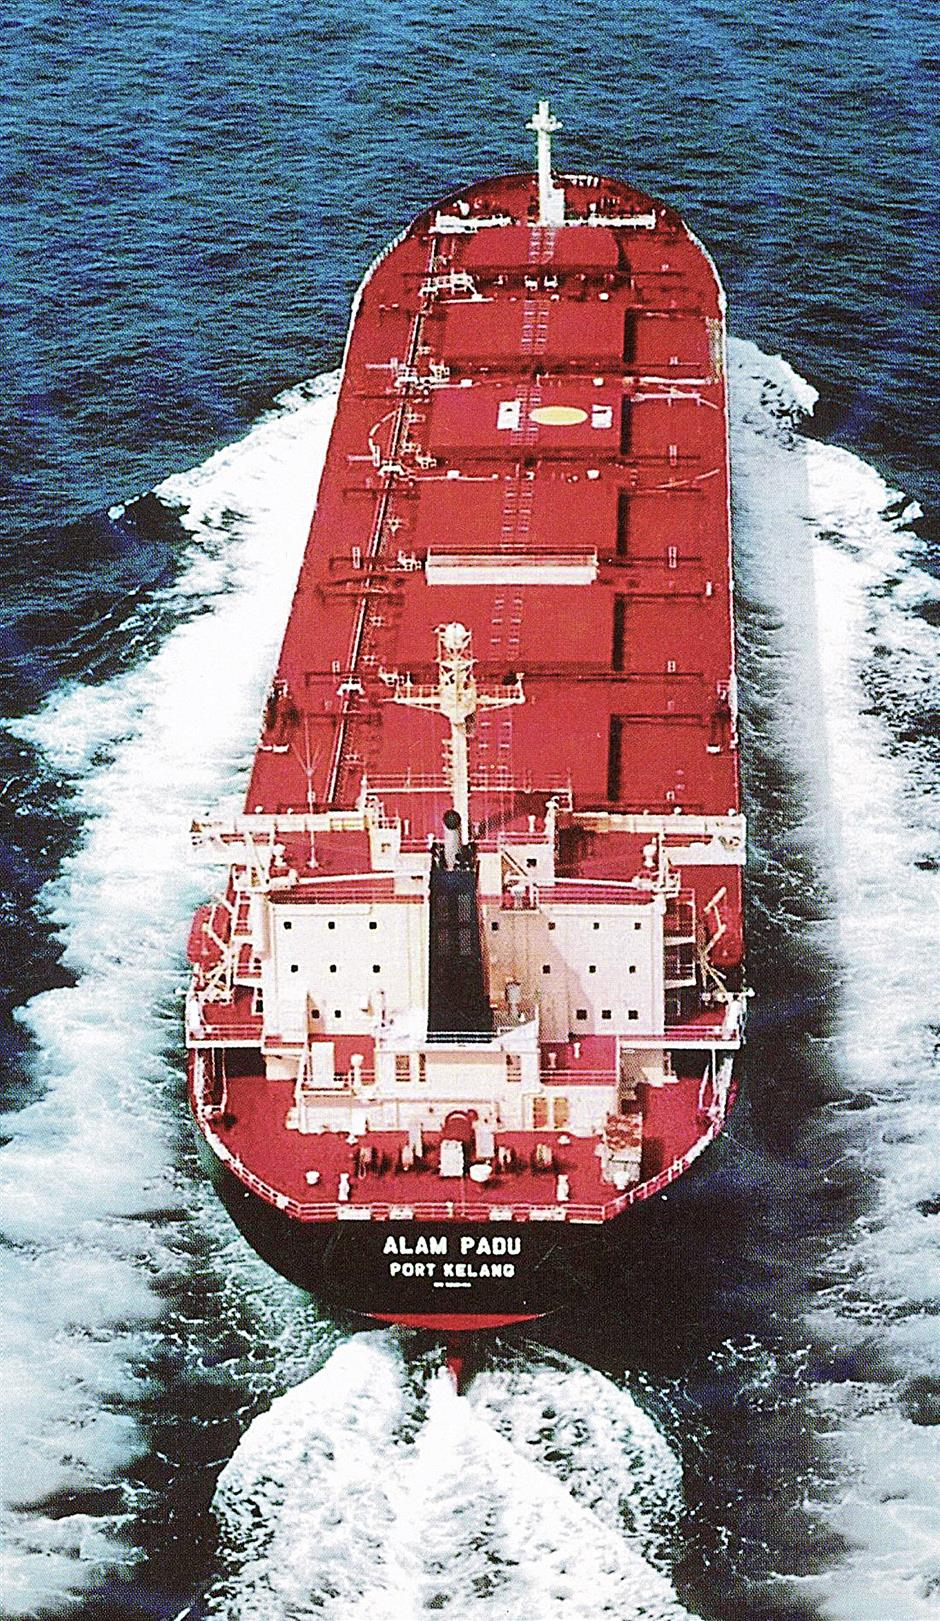 A tanker from  Malaysian Bulk Carriers. Shares of Maybulk have crept up steadily over a one-year period.